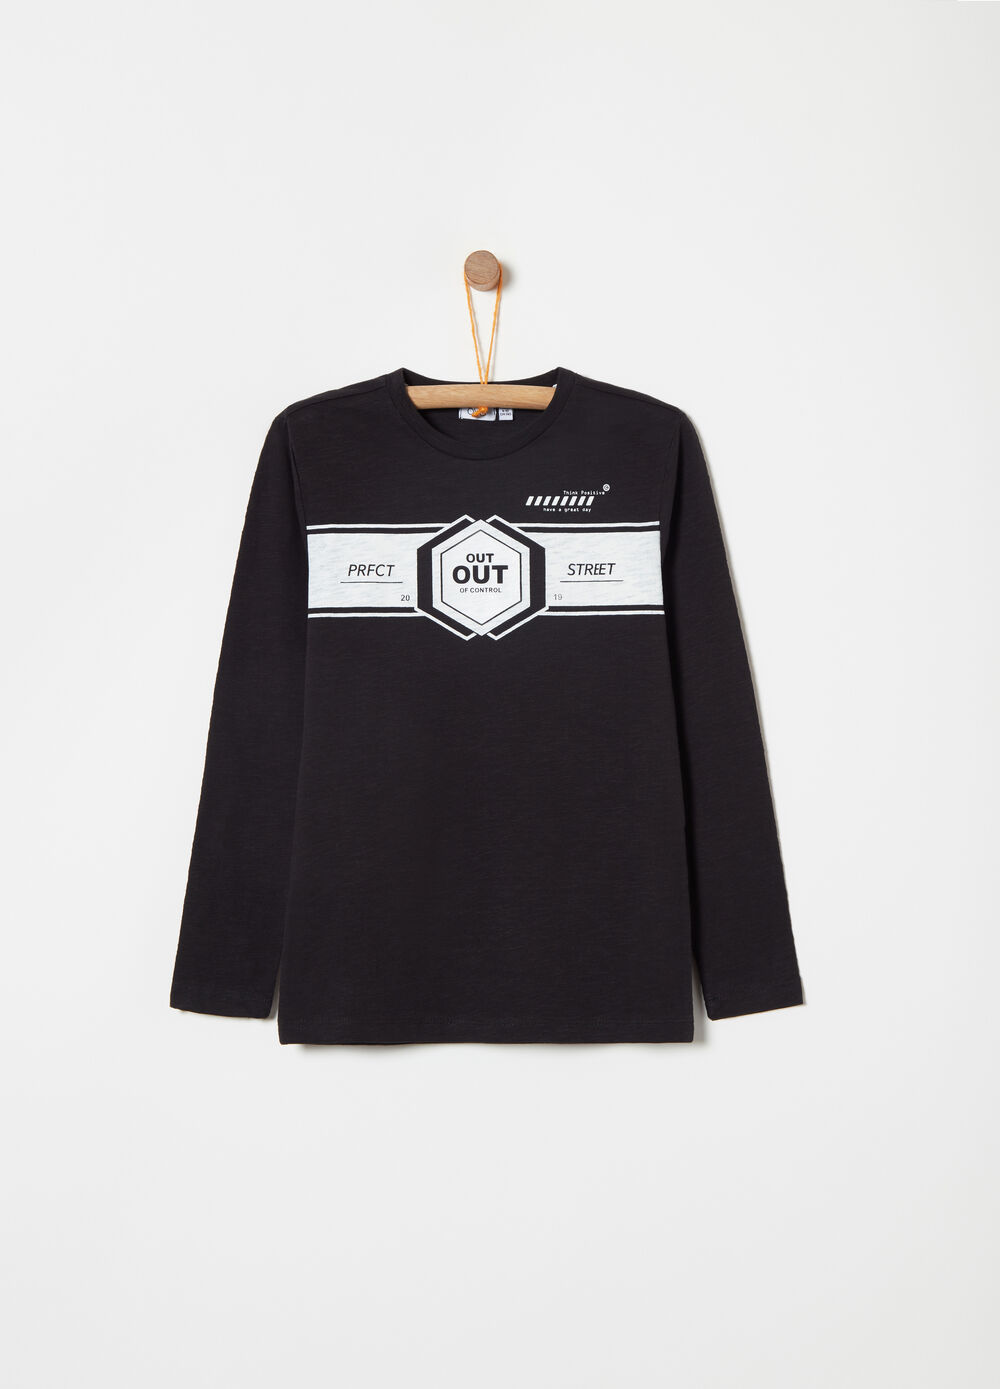 T-shirt in slub jersey with print